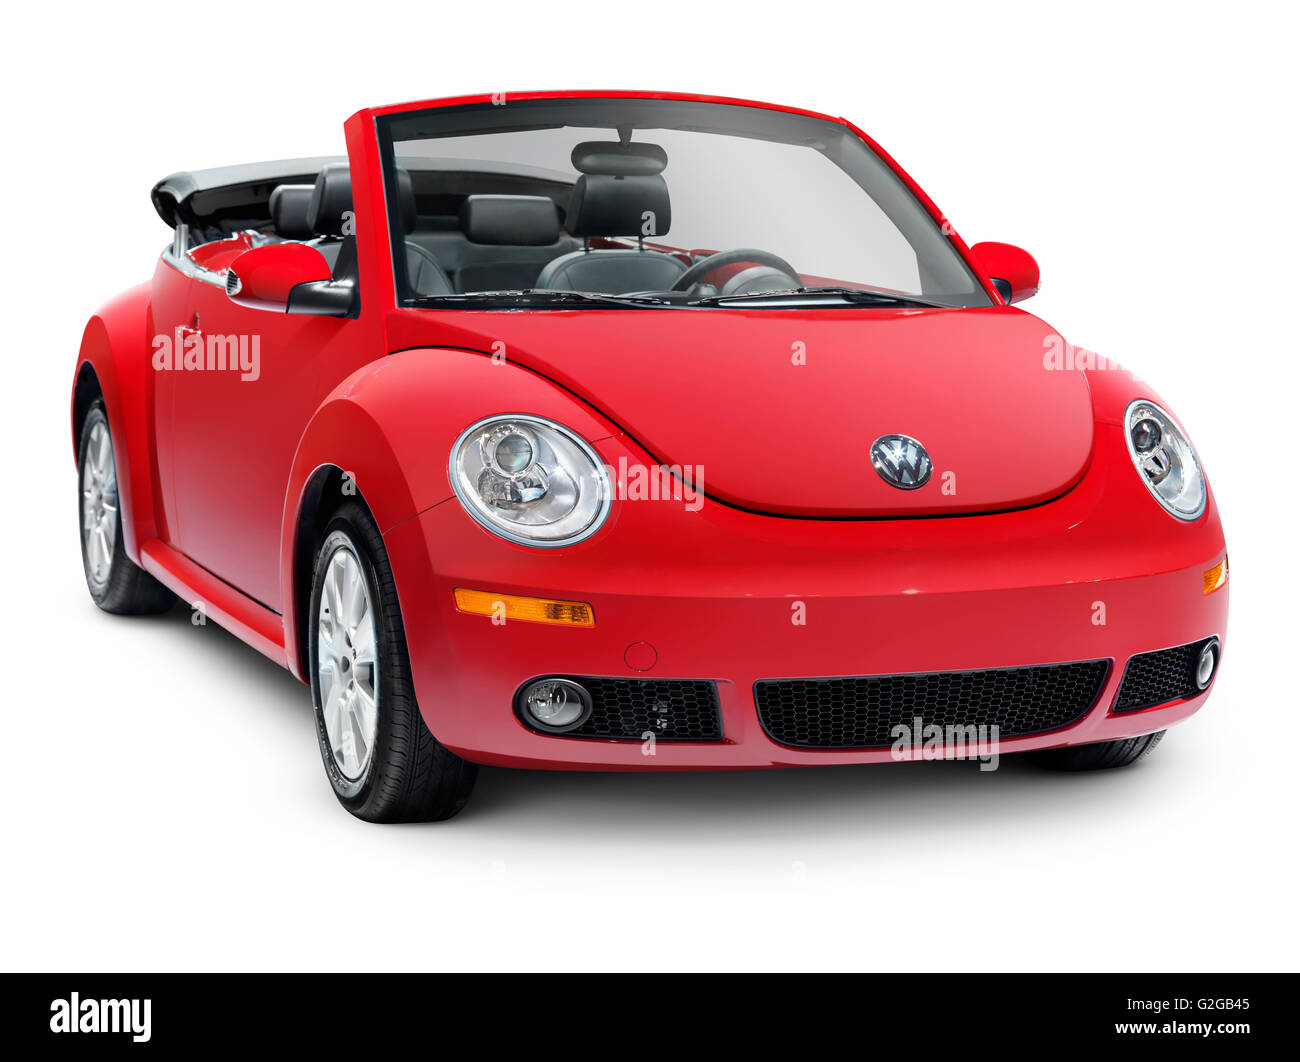 Volkswagen New Beetle High Resolution Stock Photography And Images Alamy